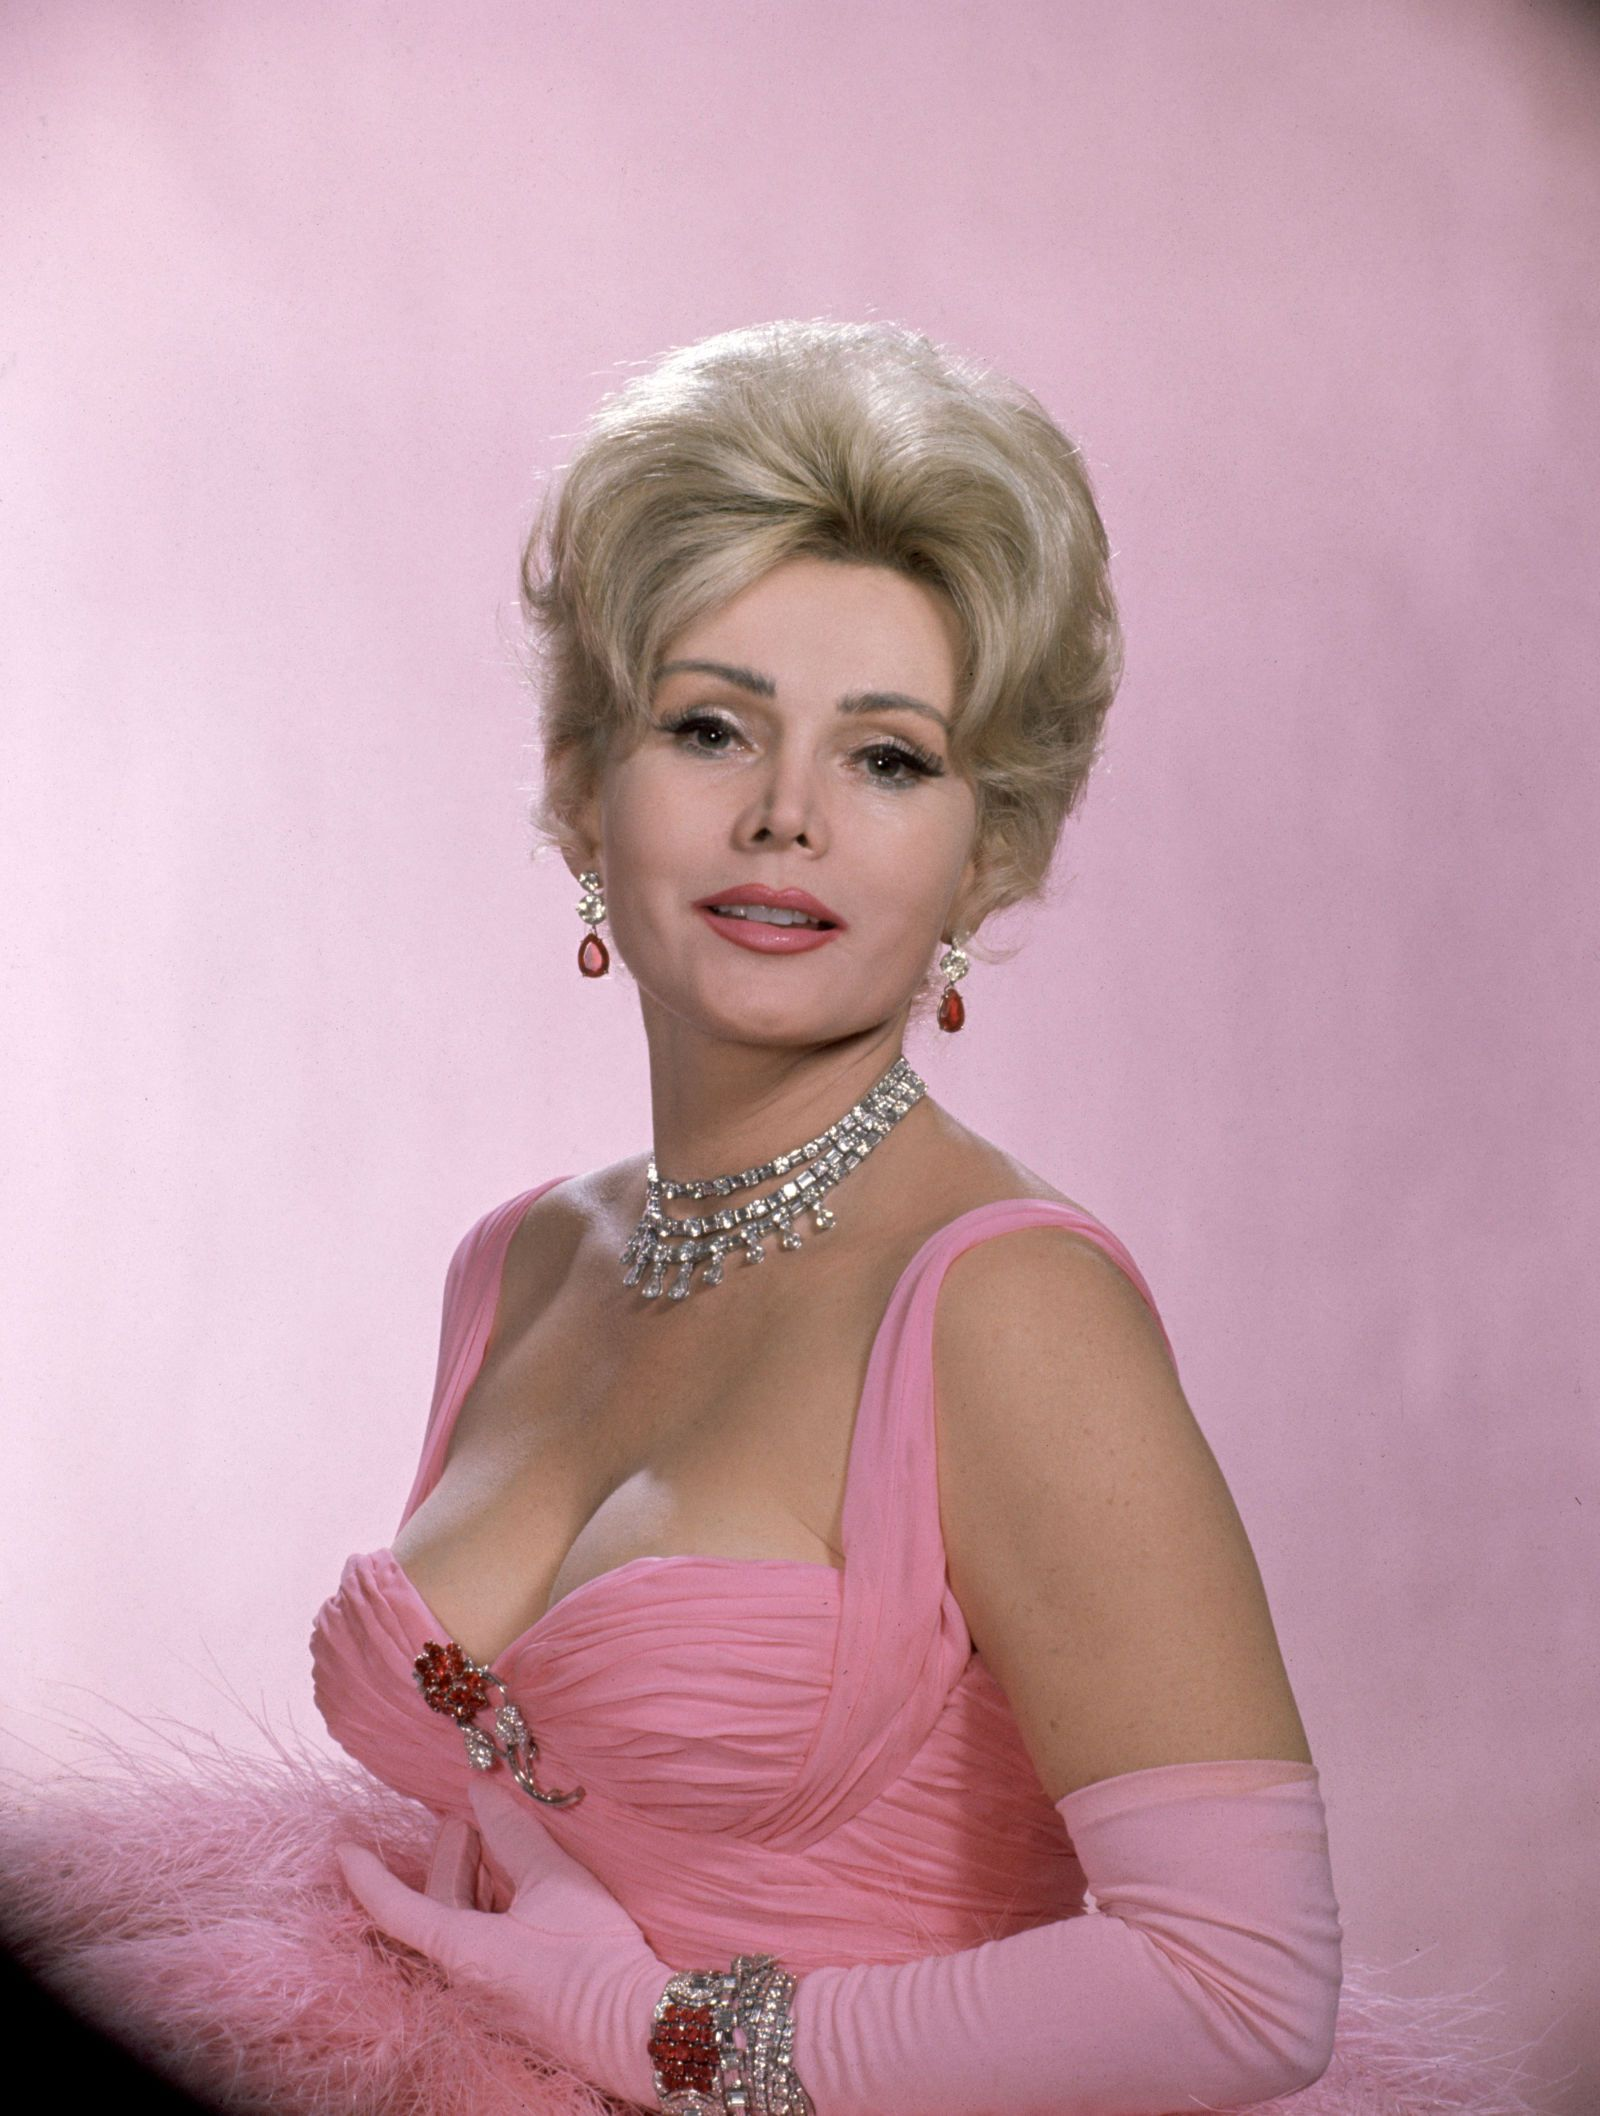 35 Epic Zsa Zsa Gabor Quotes #hollywoodlegends